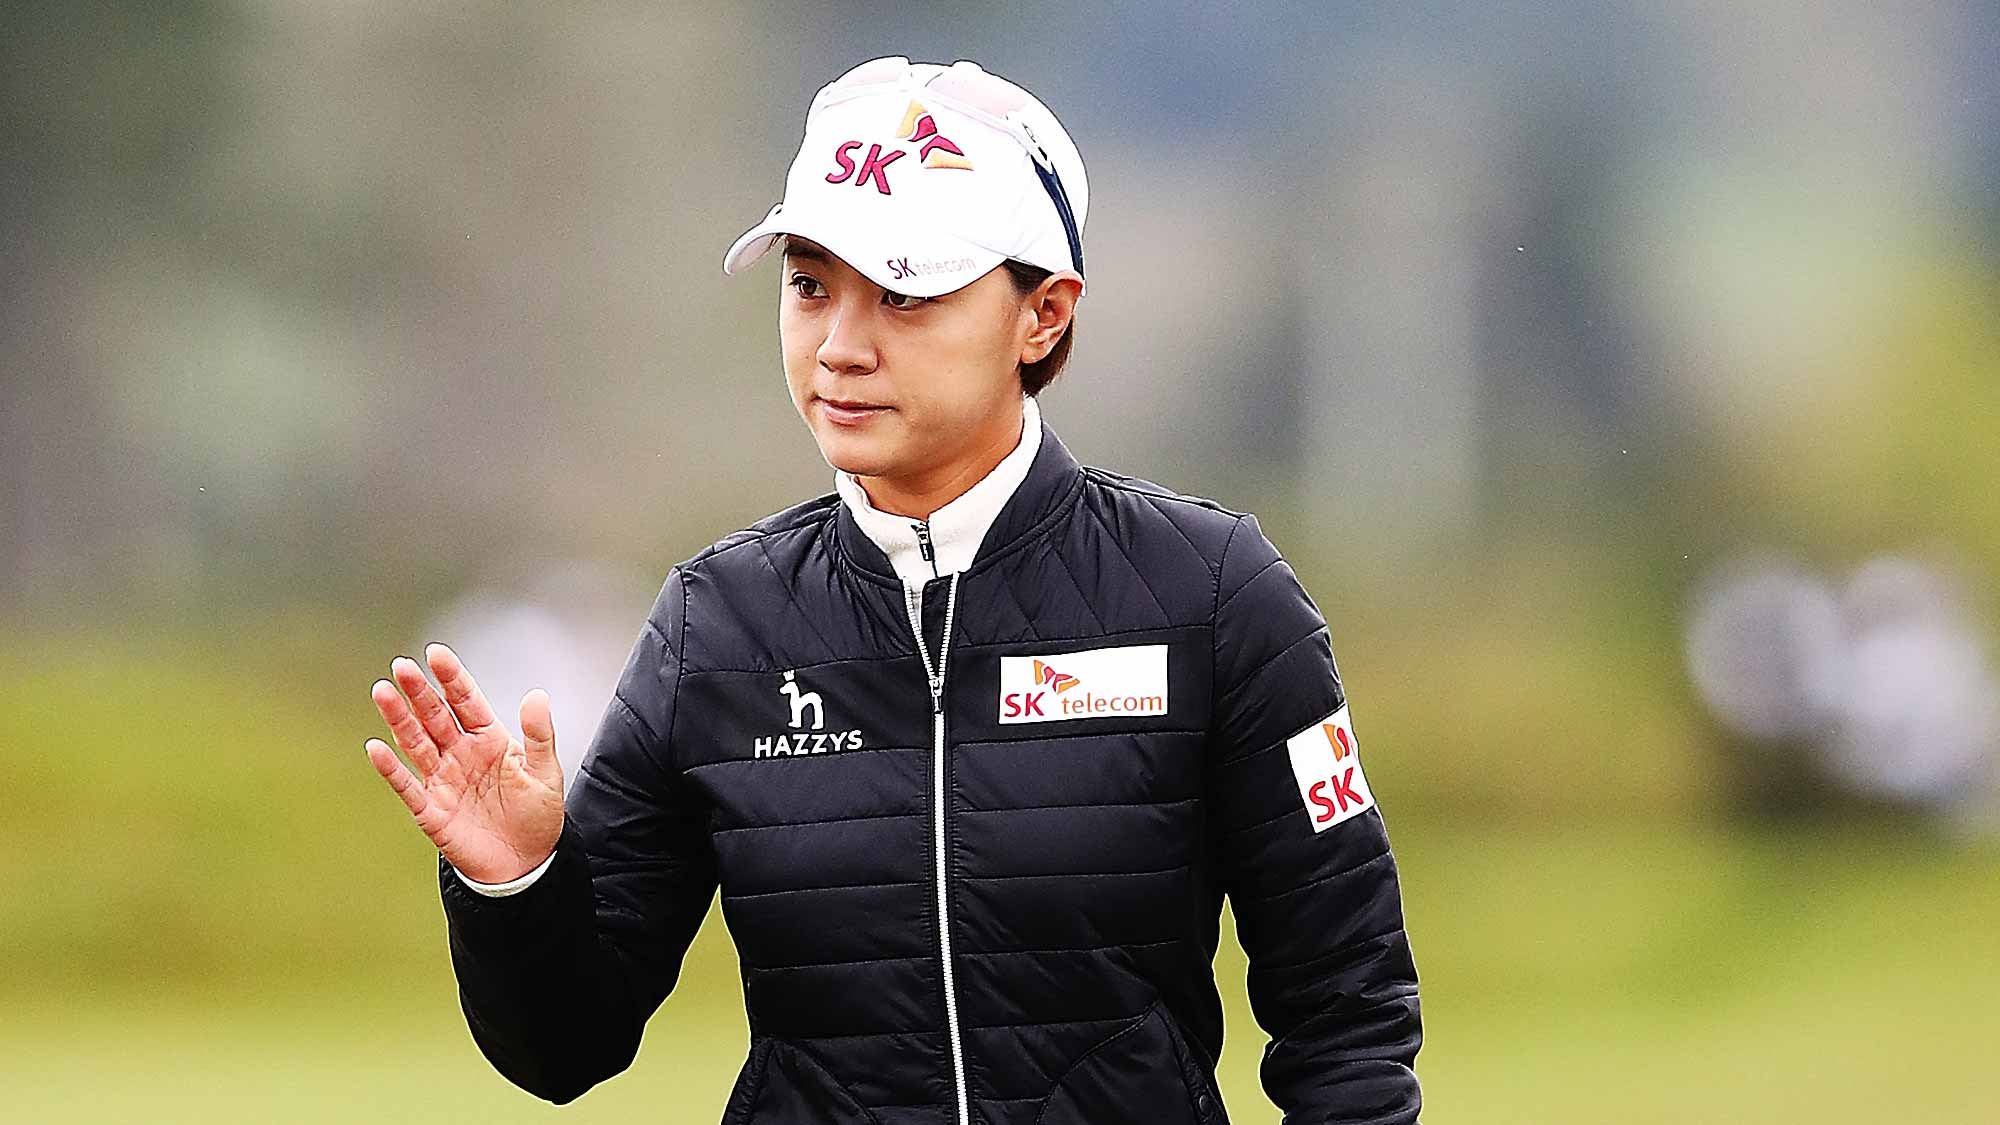 Na Yeon Choi of Korea acknowledges the crowd during day two of the New Zealand Women's Open at Windross Farm